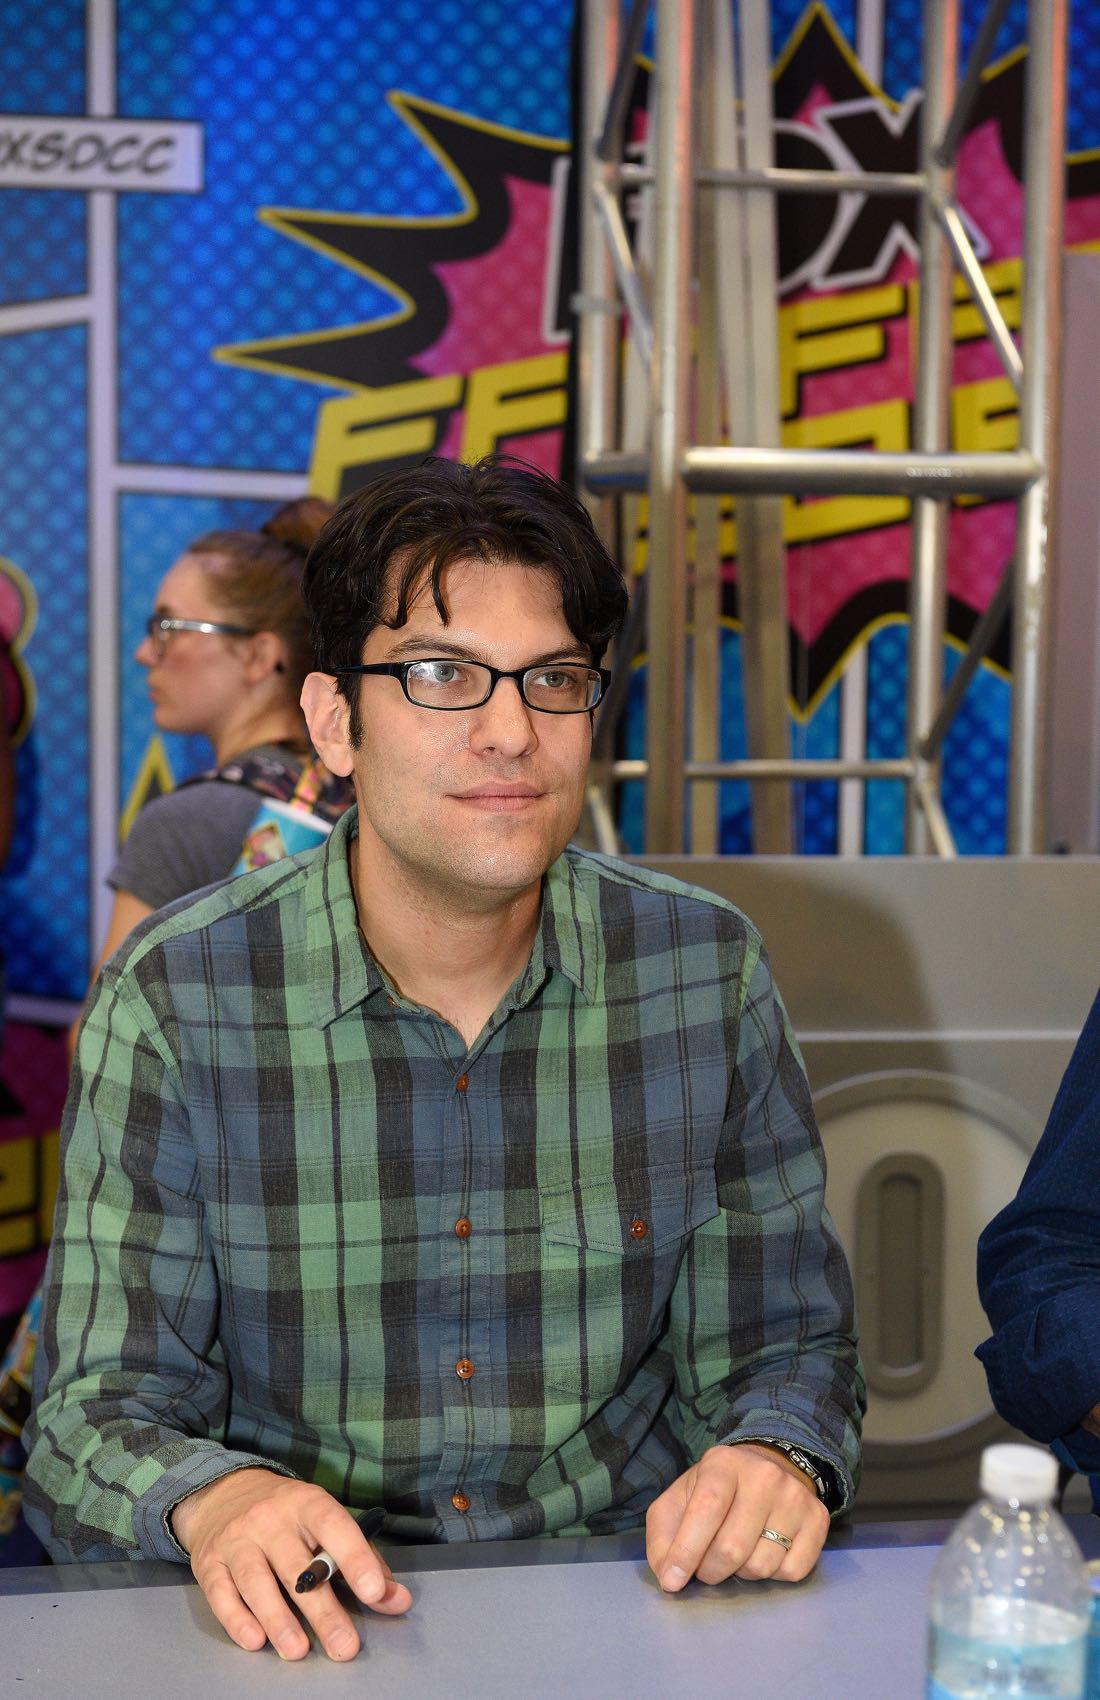 FOX FANFARE AT SAN DIEGO COMIC-CON © 2016: BOB'S BURGERS cast member Dan Mintz during BOB'S BURGERS booth signing on Friday, July 22 at the FOX FANFARE AT SAN DIEGO COMIC-CON © 2016. CR: Alan Hess/FOX © 2016 FOX BROADCASTING